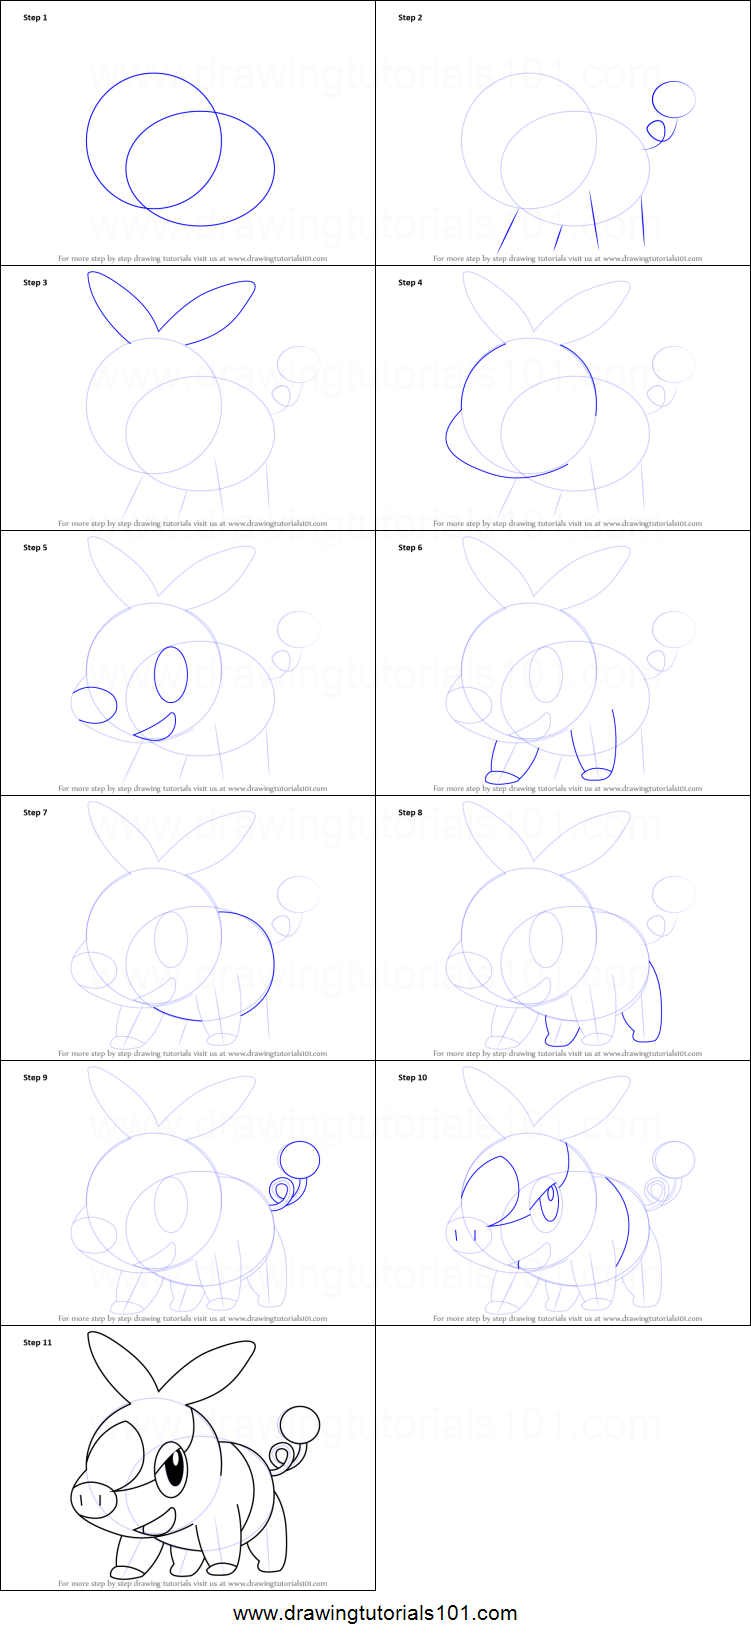 How To Draw Tepig From Pokemon Printable Step By Step Drawing Sheet Drawingtutorials101 Com Drawing Sheet Pokemon Sketch Pokemon Drawings [ 1641 x 751 Pixel ]